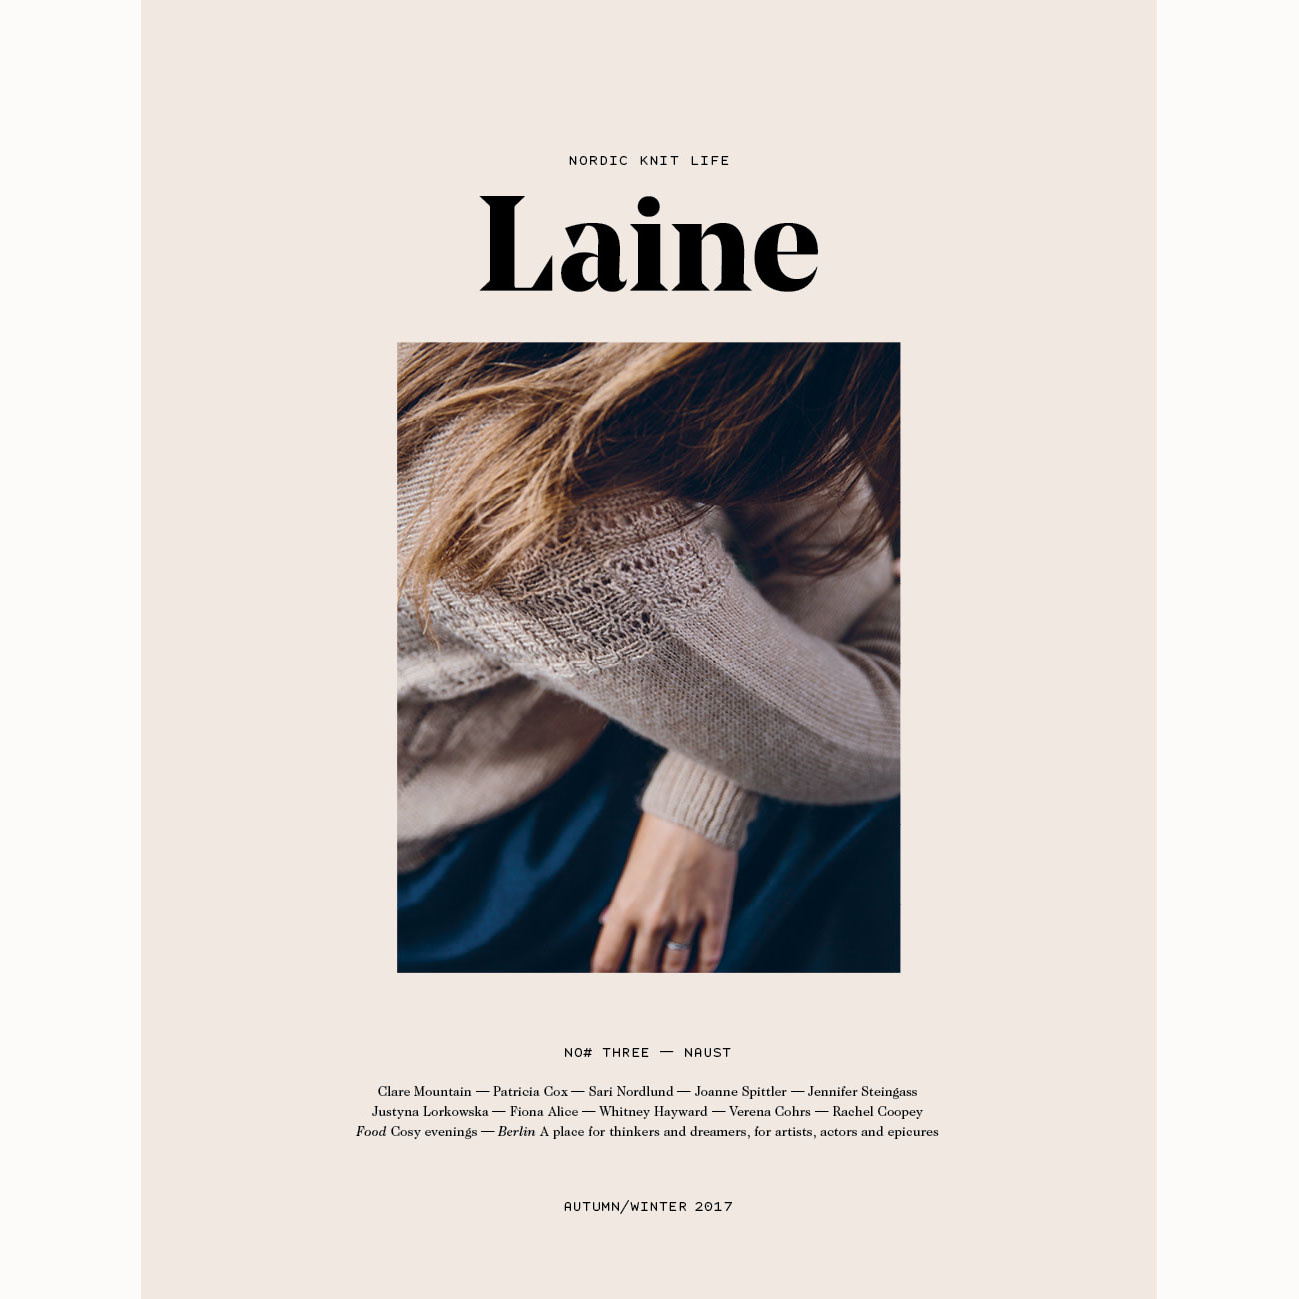 Laine Nordic Knit Life Issue 3 Stephen Penelope